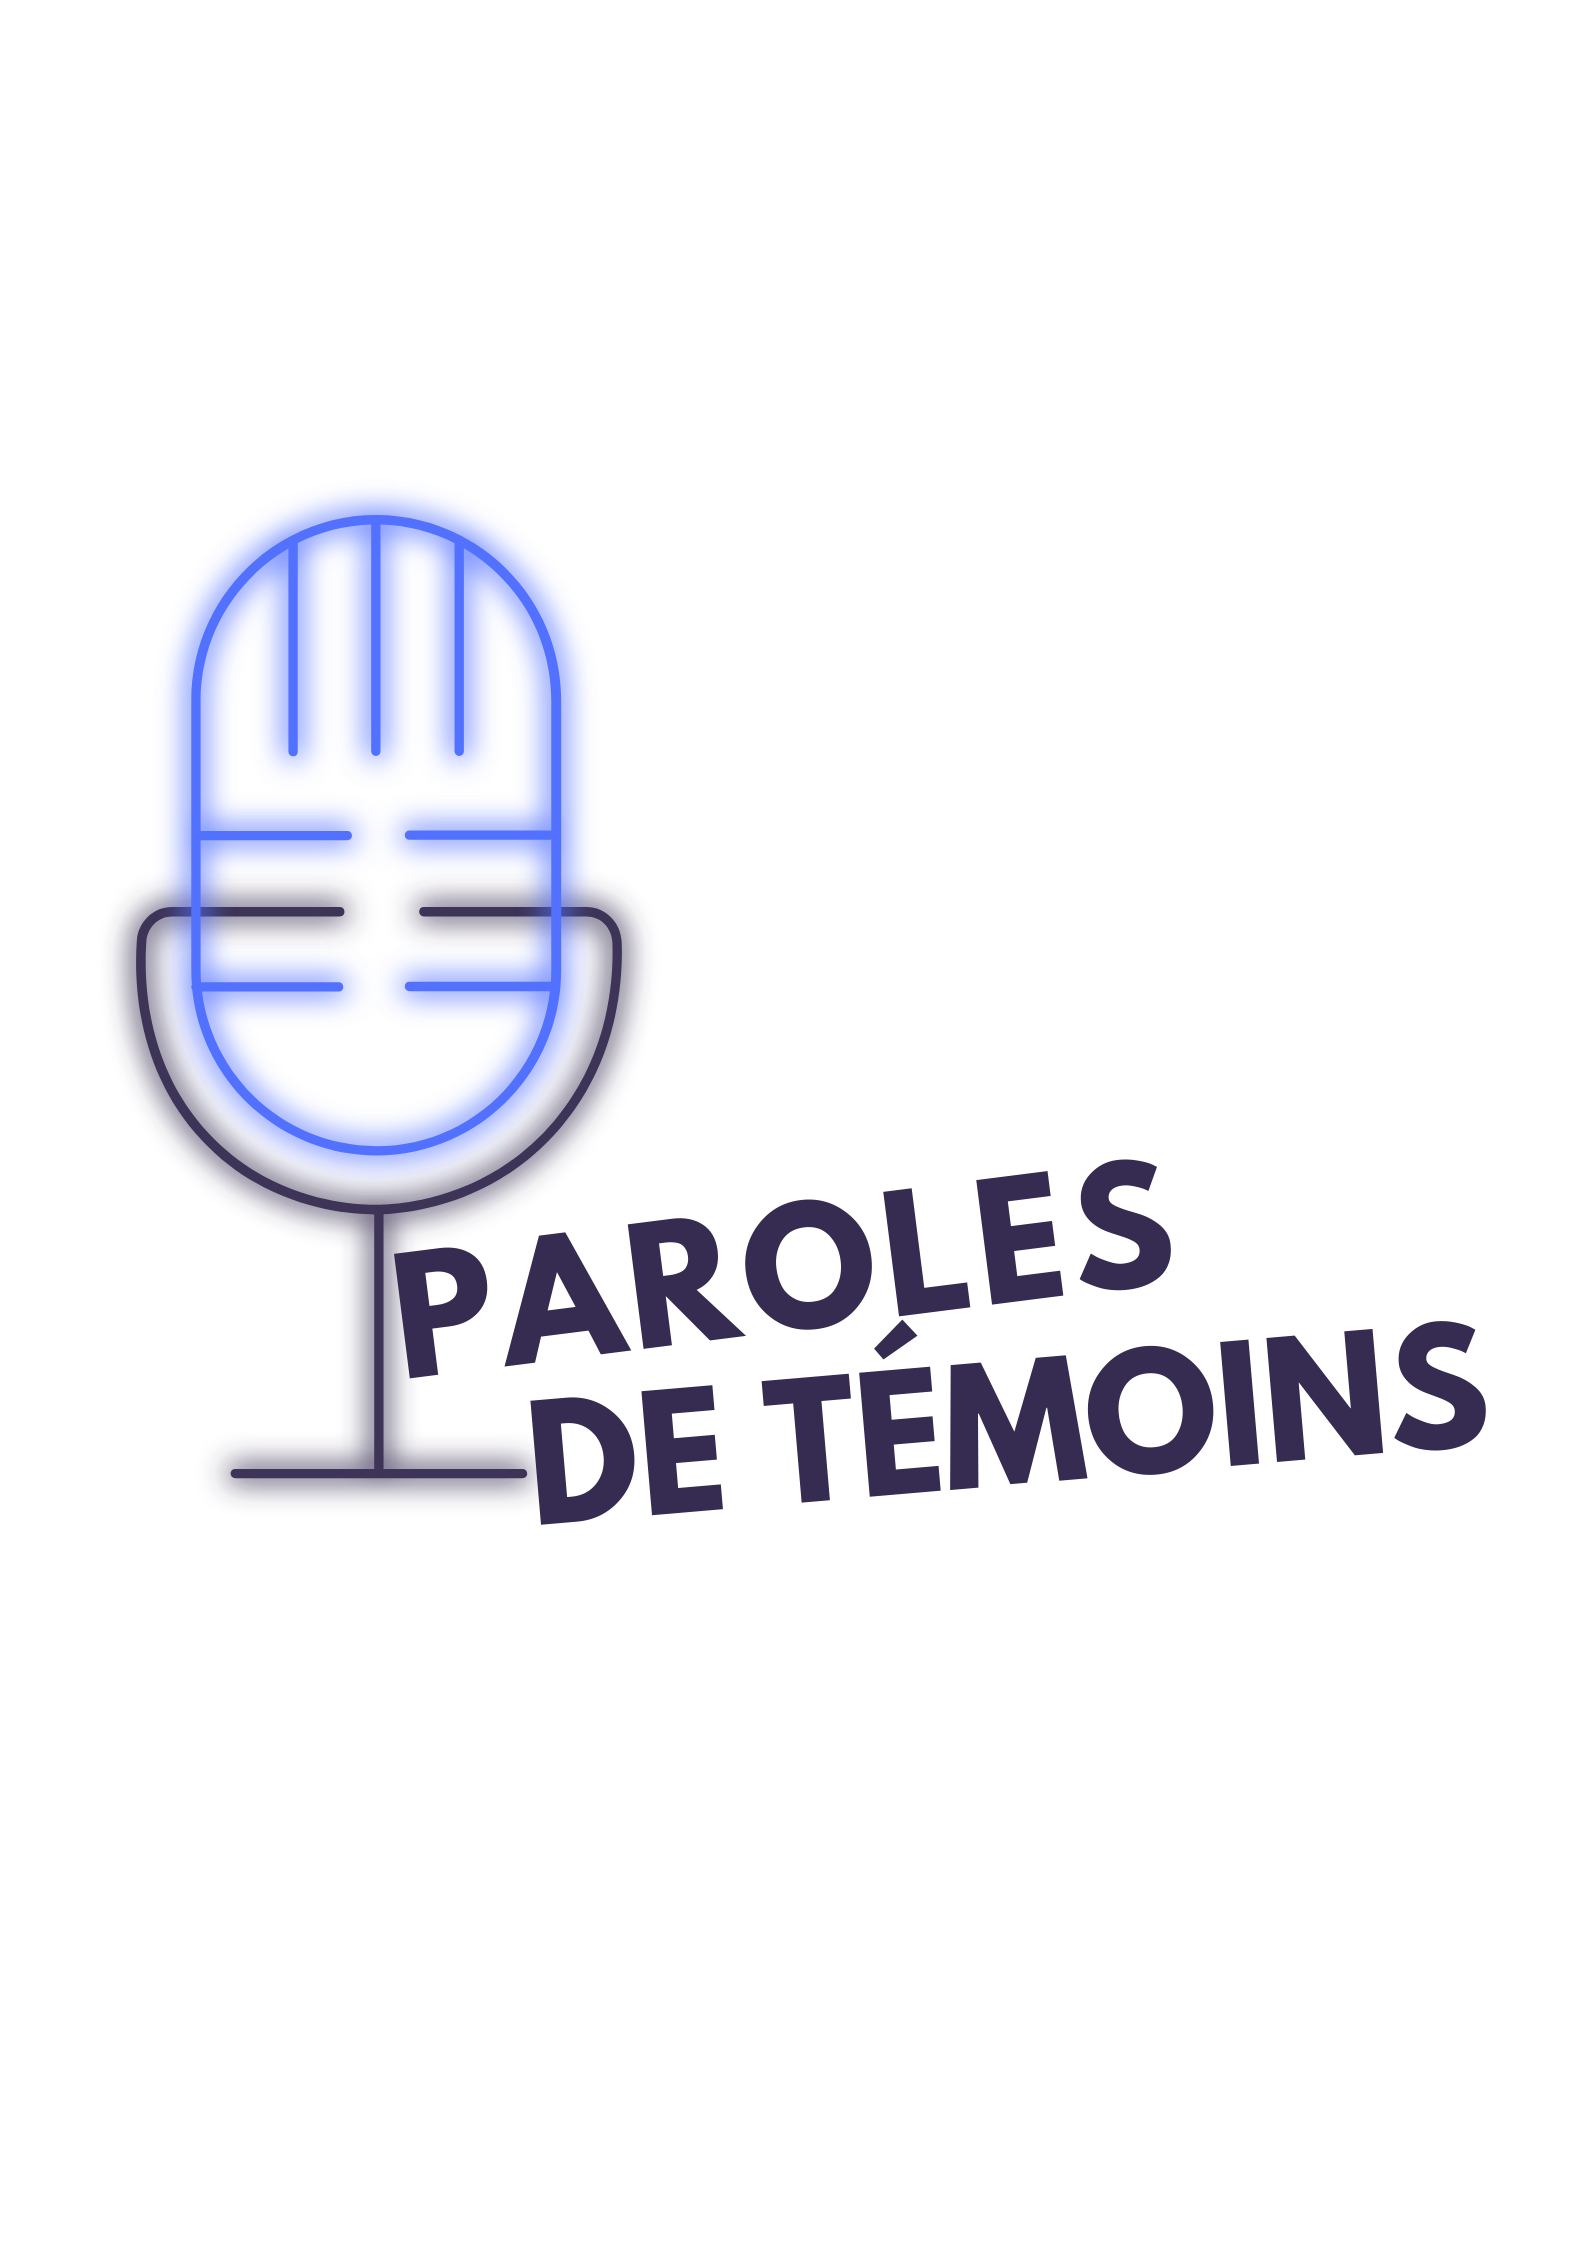 Paroles de témoins